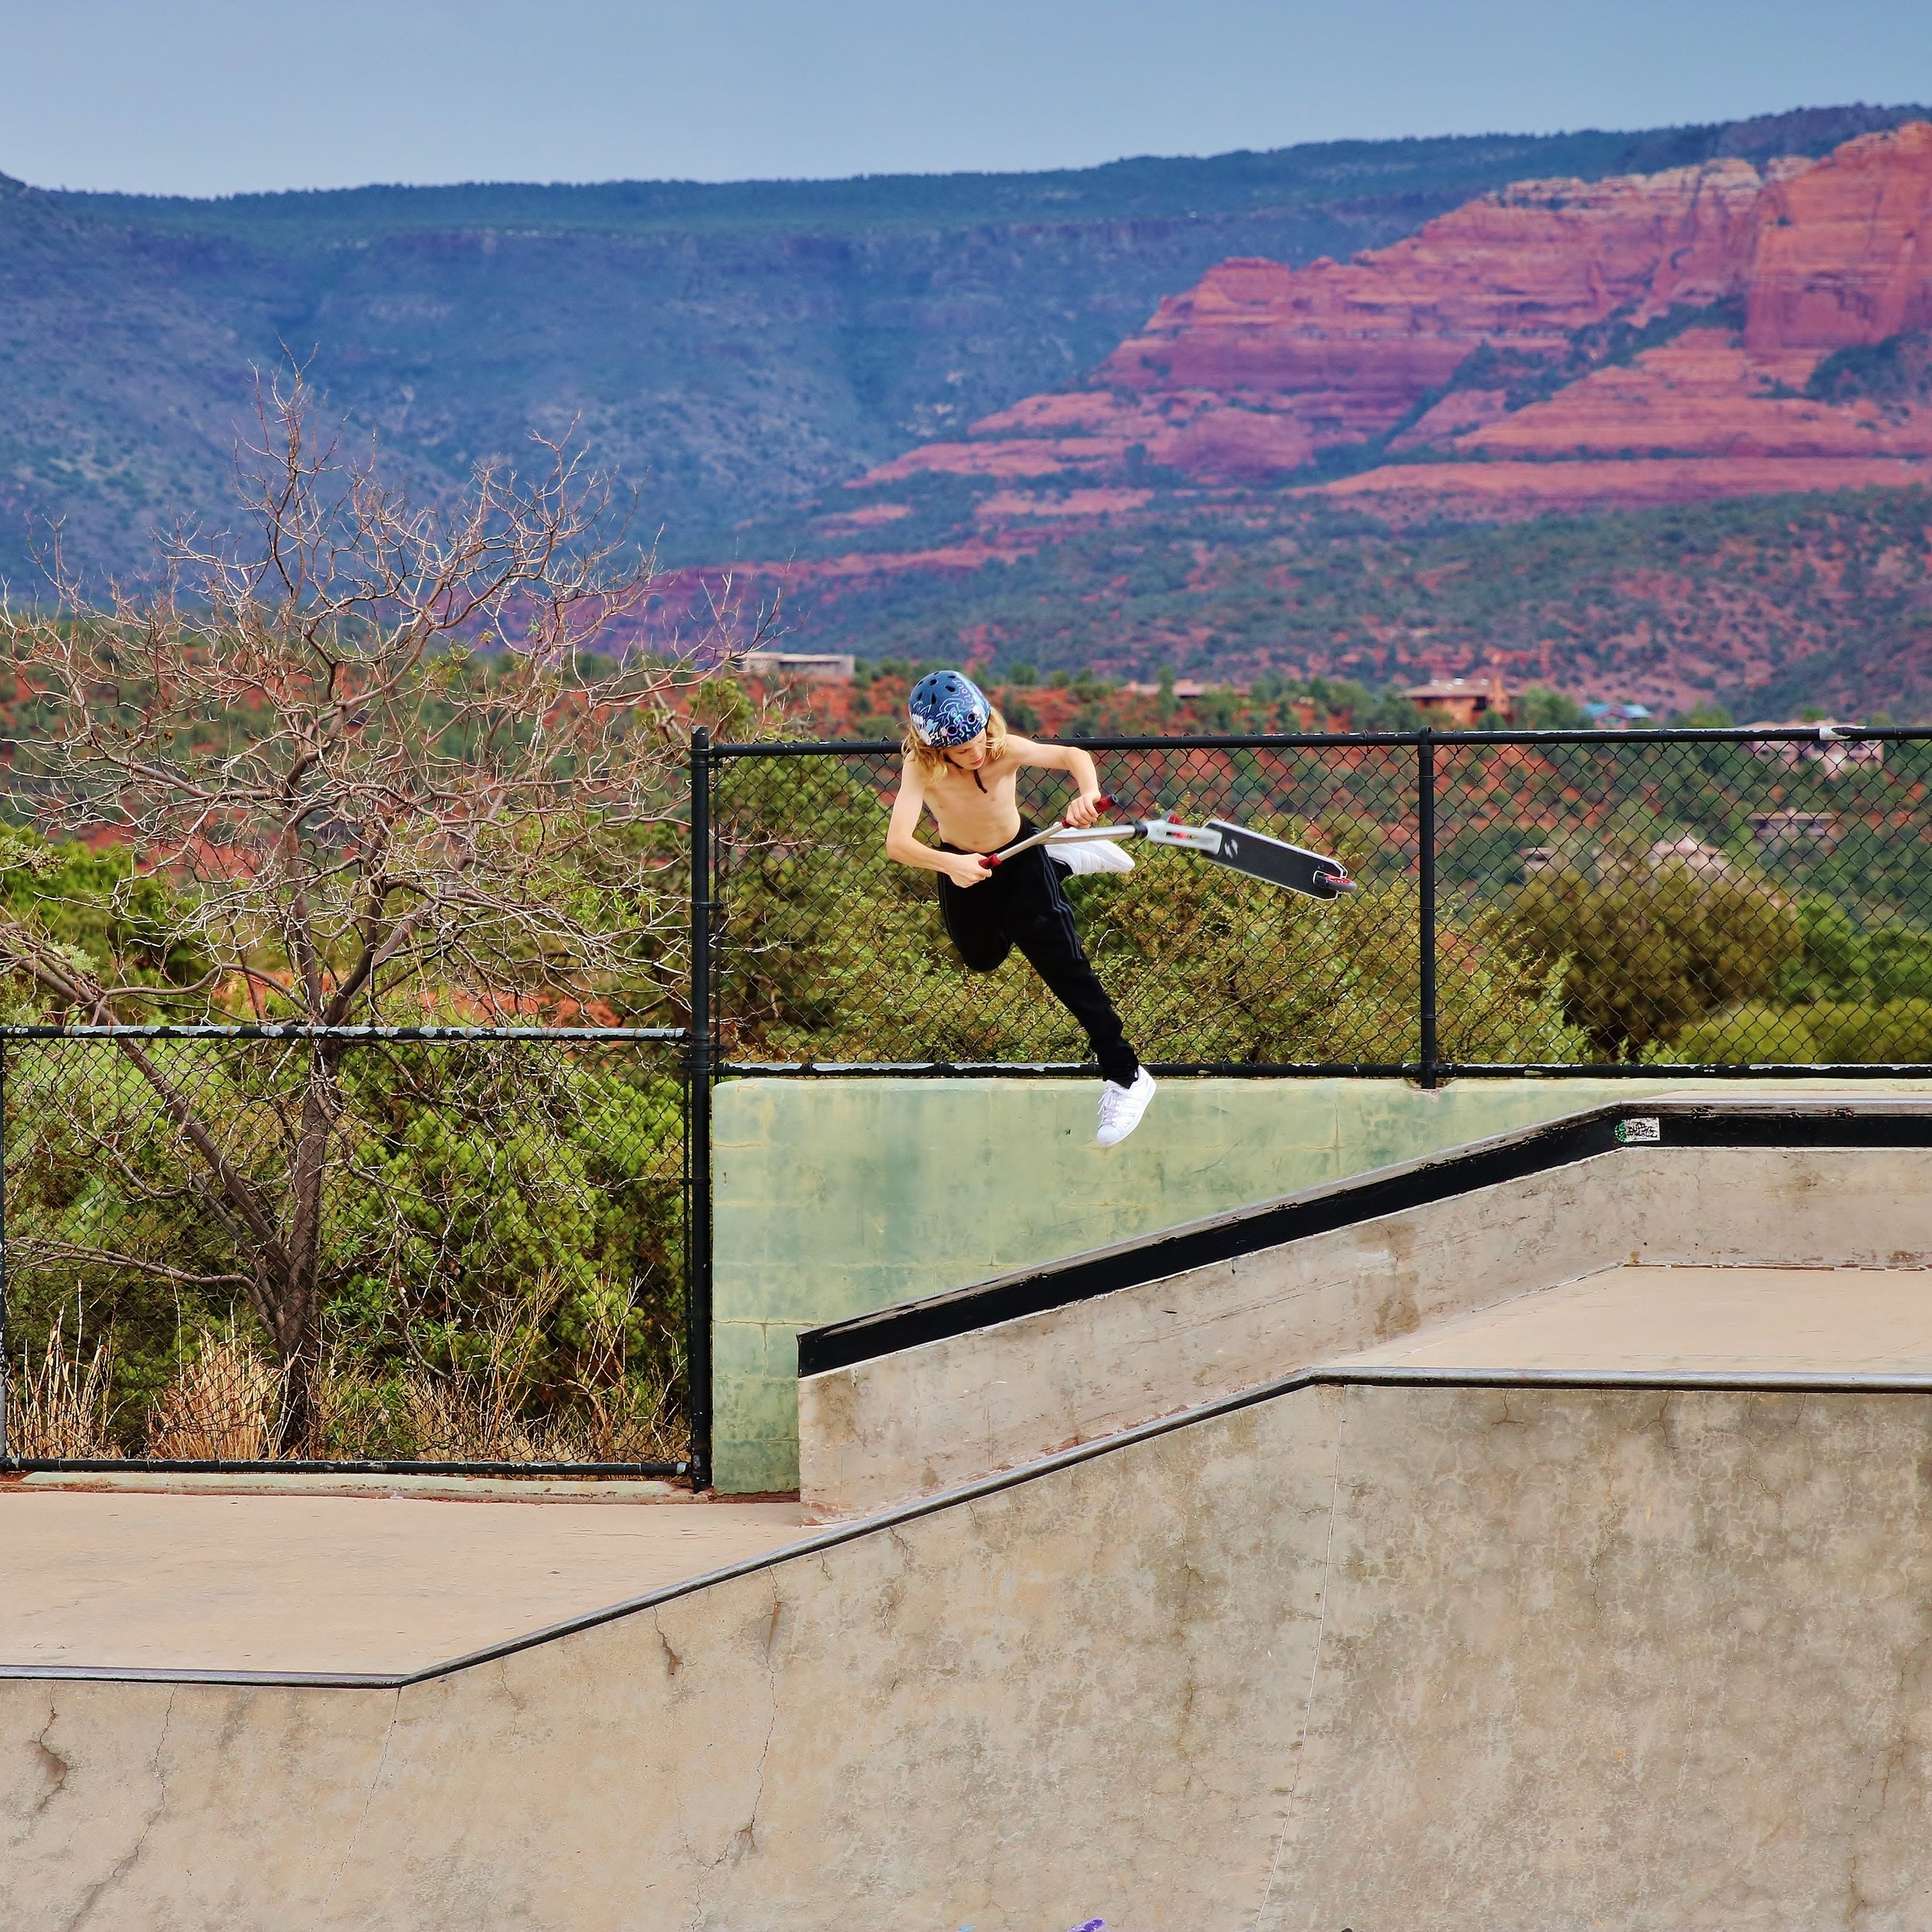 Havoc & S1 Pro Rider, just 13 years -old, Daniel Deeder, flying high against the scenic backdrop of Sedona Skatepark in Arizona.